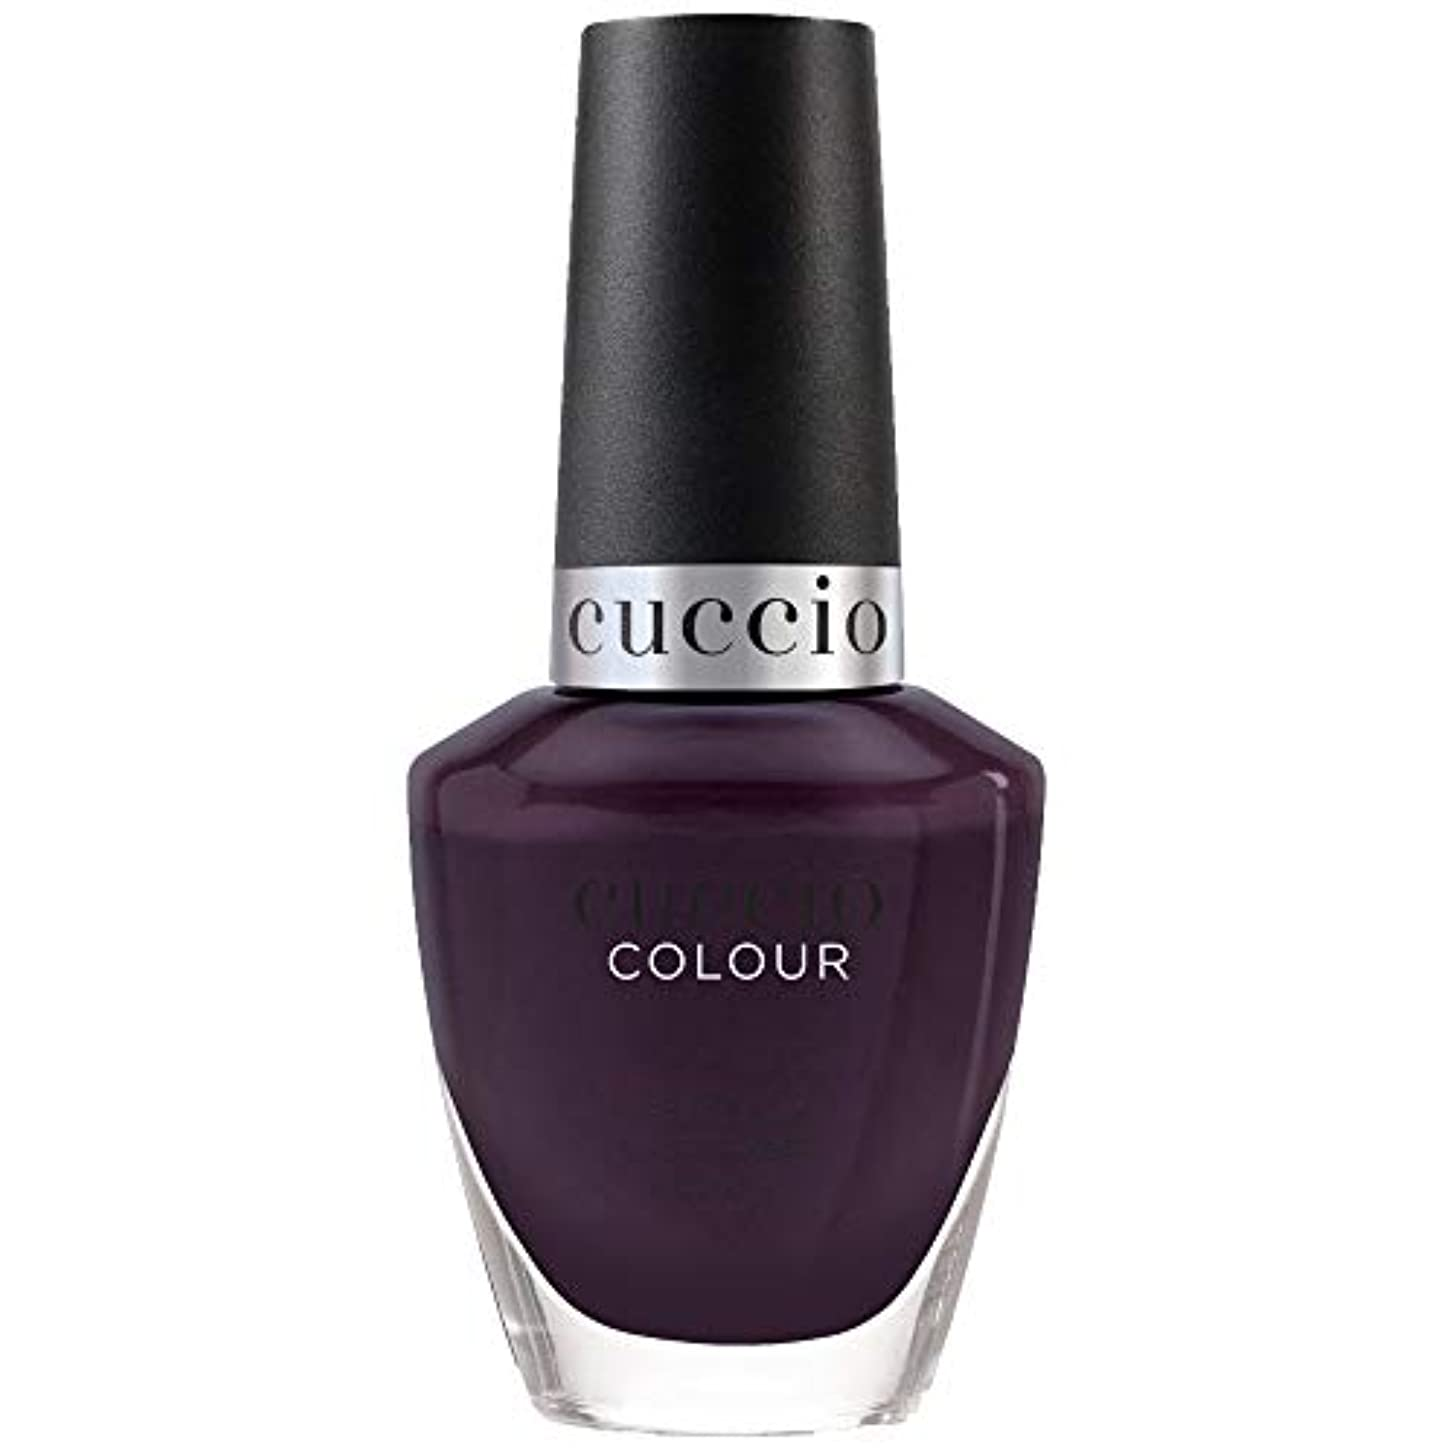 急いで電気誠実さCuccio Colour Nail Lacquer - Tapestry Collection - Quilty As Charged - 13 mL / 0.43 oz